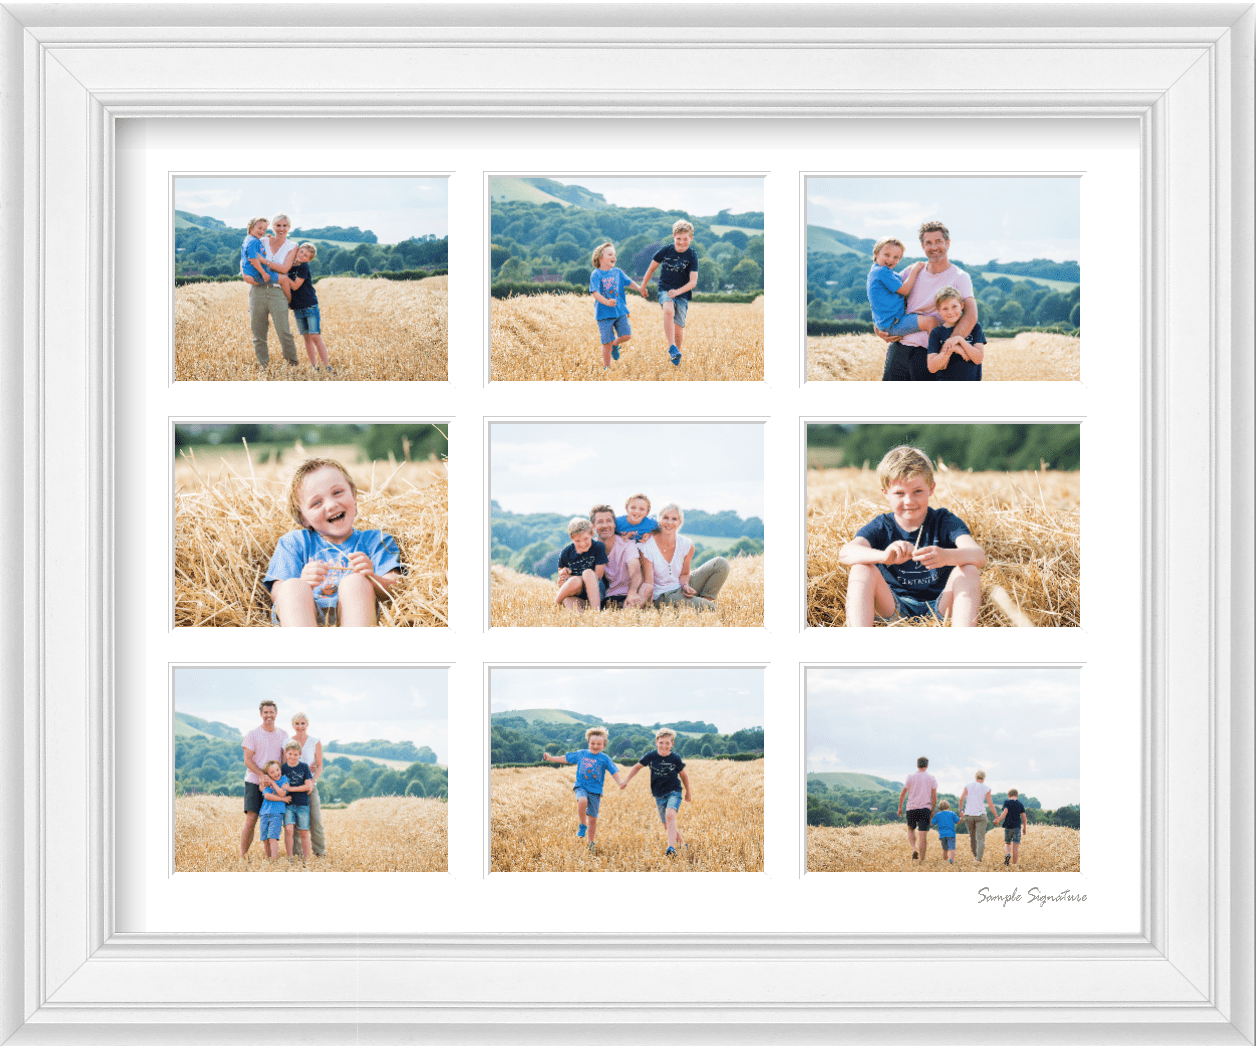 A framed montage of a family photoshoot in Ditchling